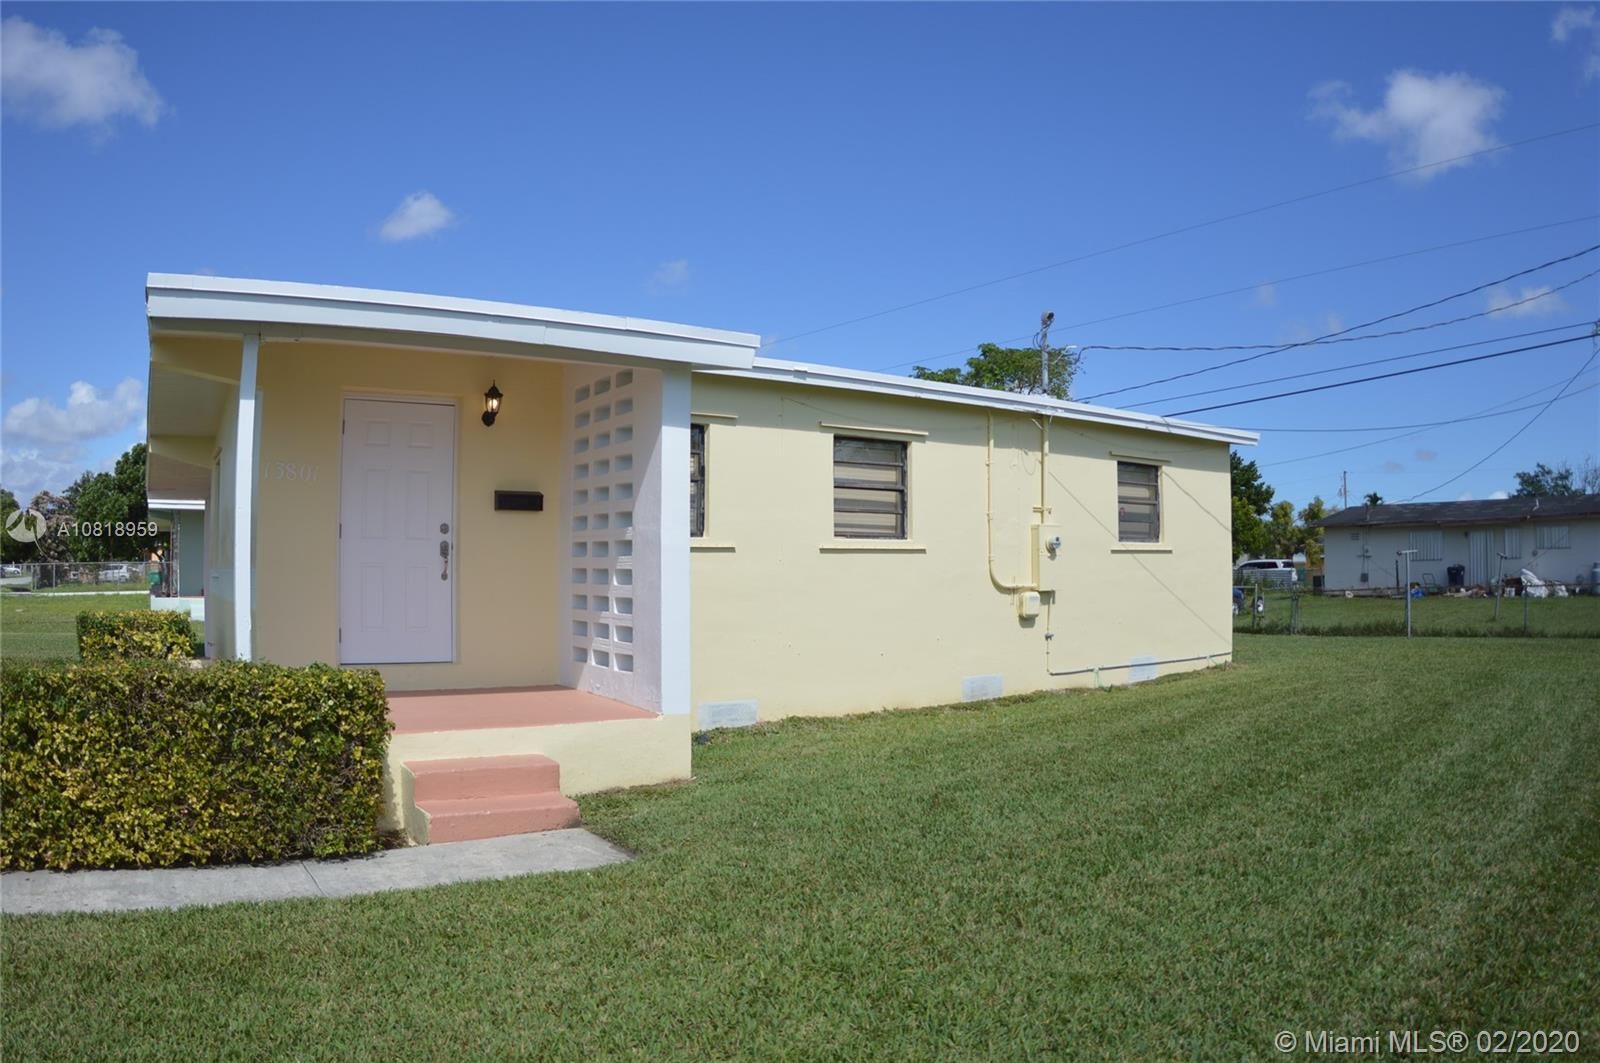 13801  Jackson St  For Sale A10818959, FL